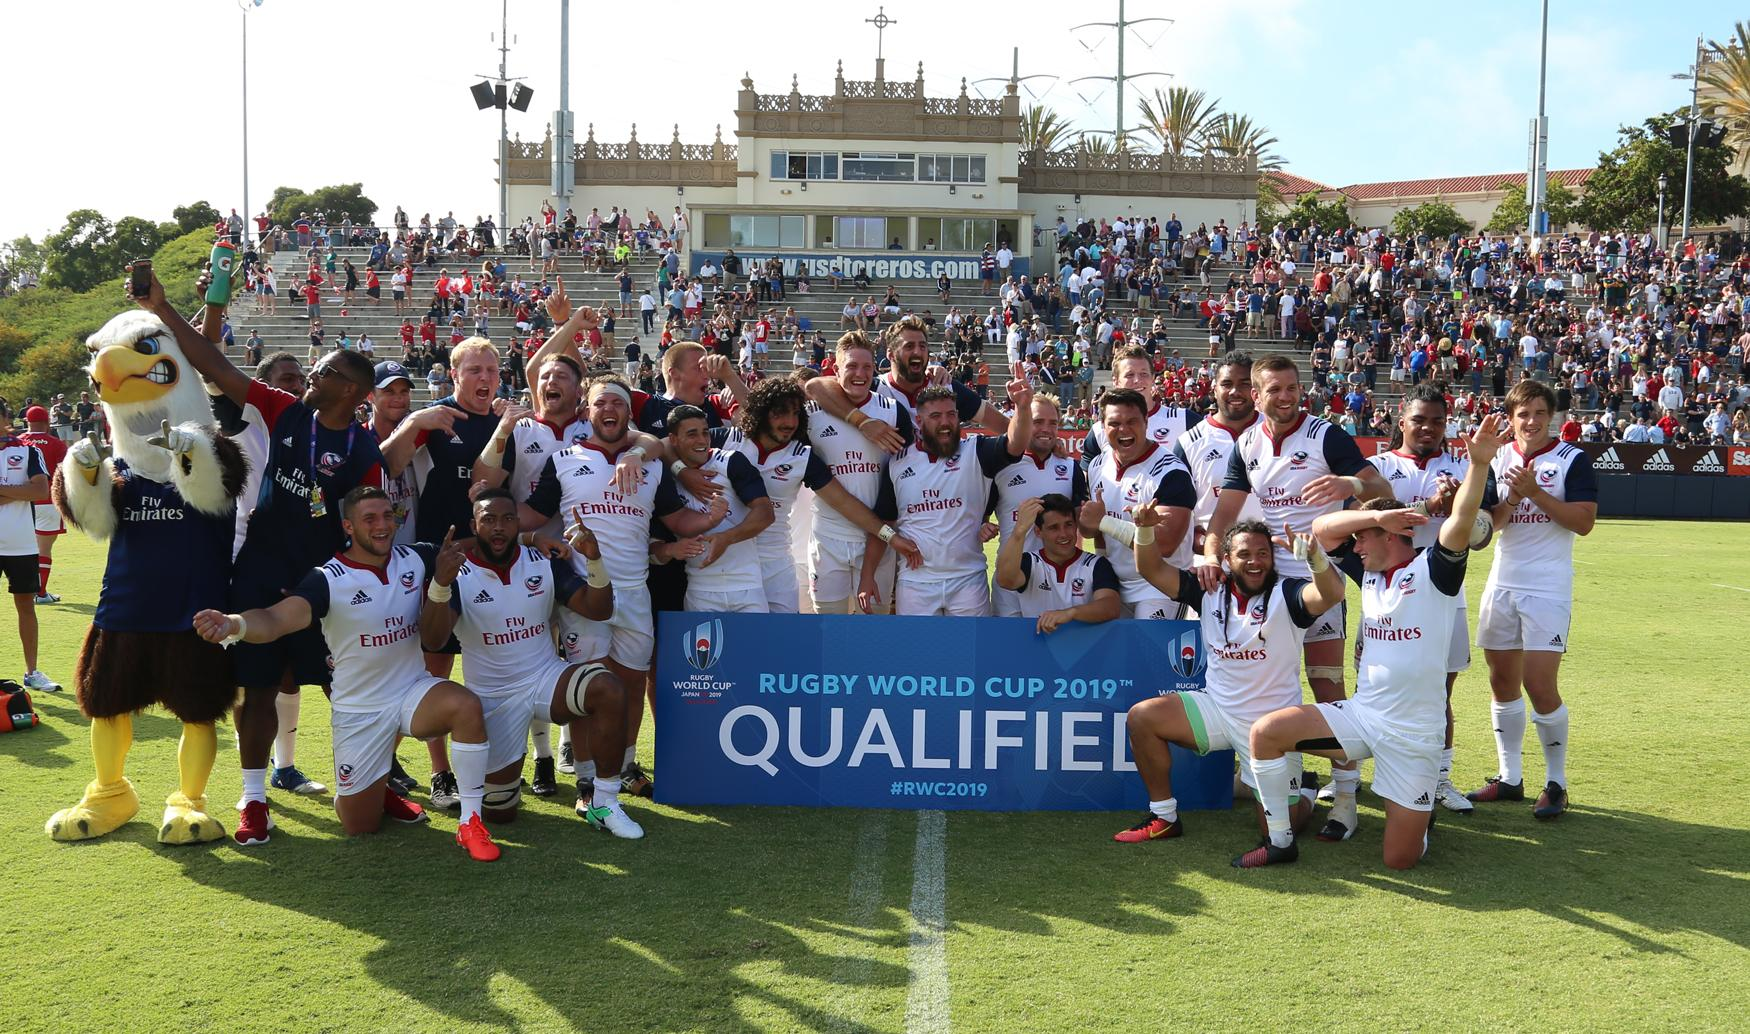 rugby world cup 2019 - photo #24